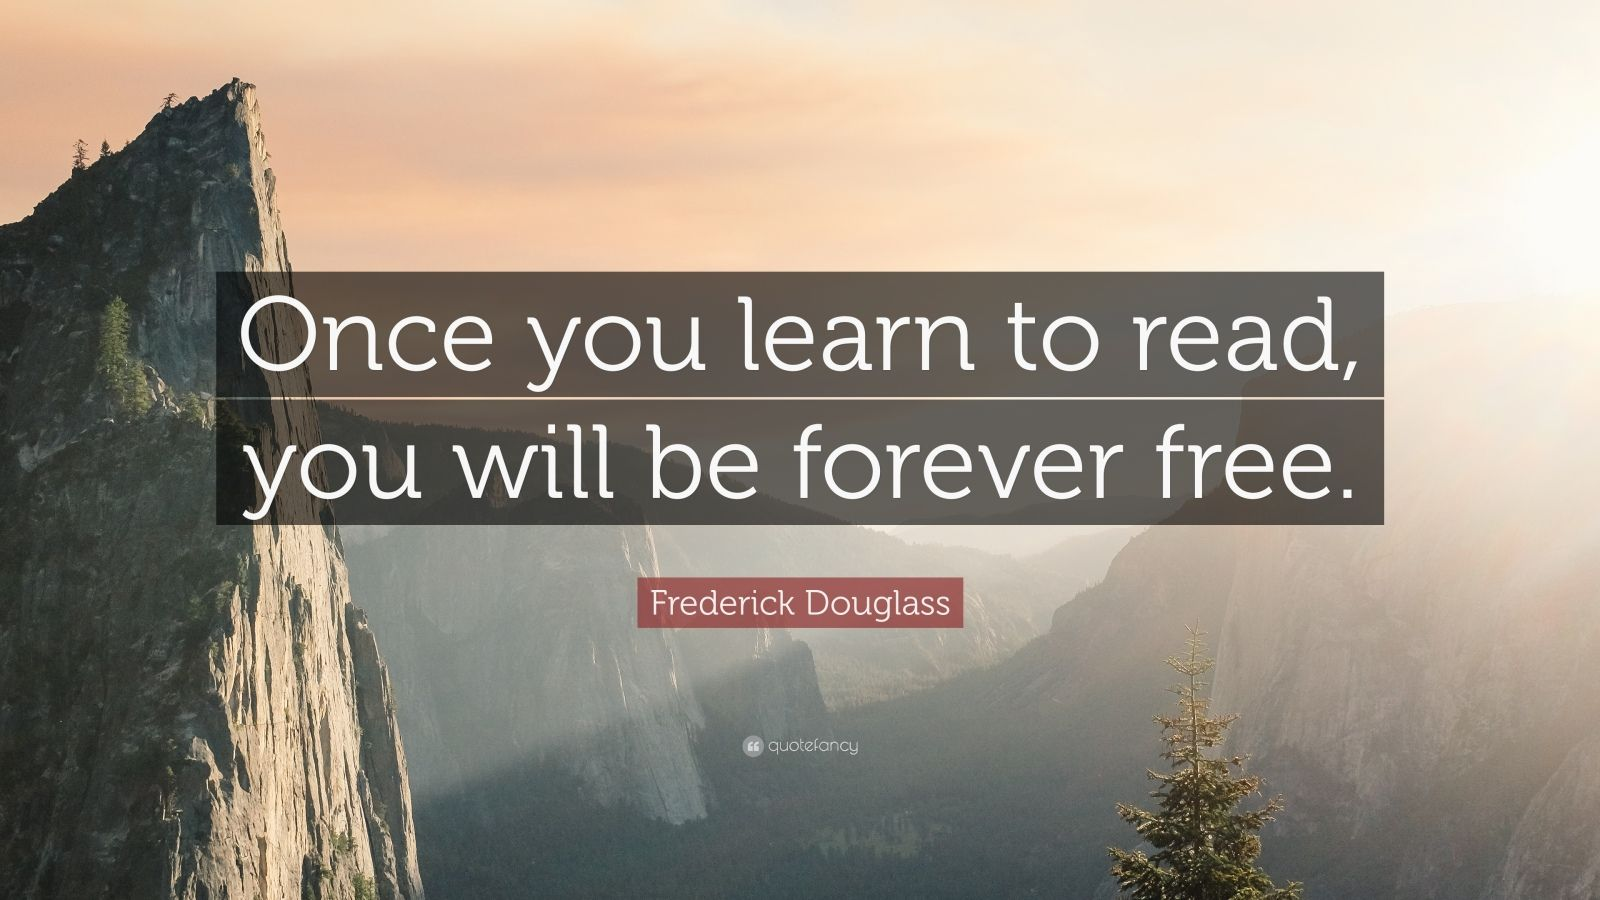 frederick douglass quotes 100  frederick douglass quote ldquoonce you learn to you will be forever